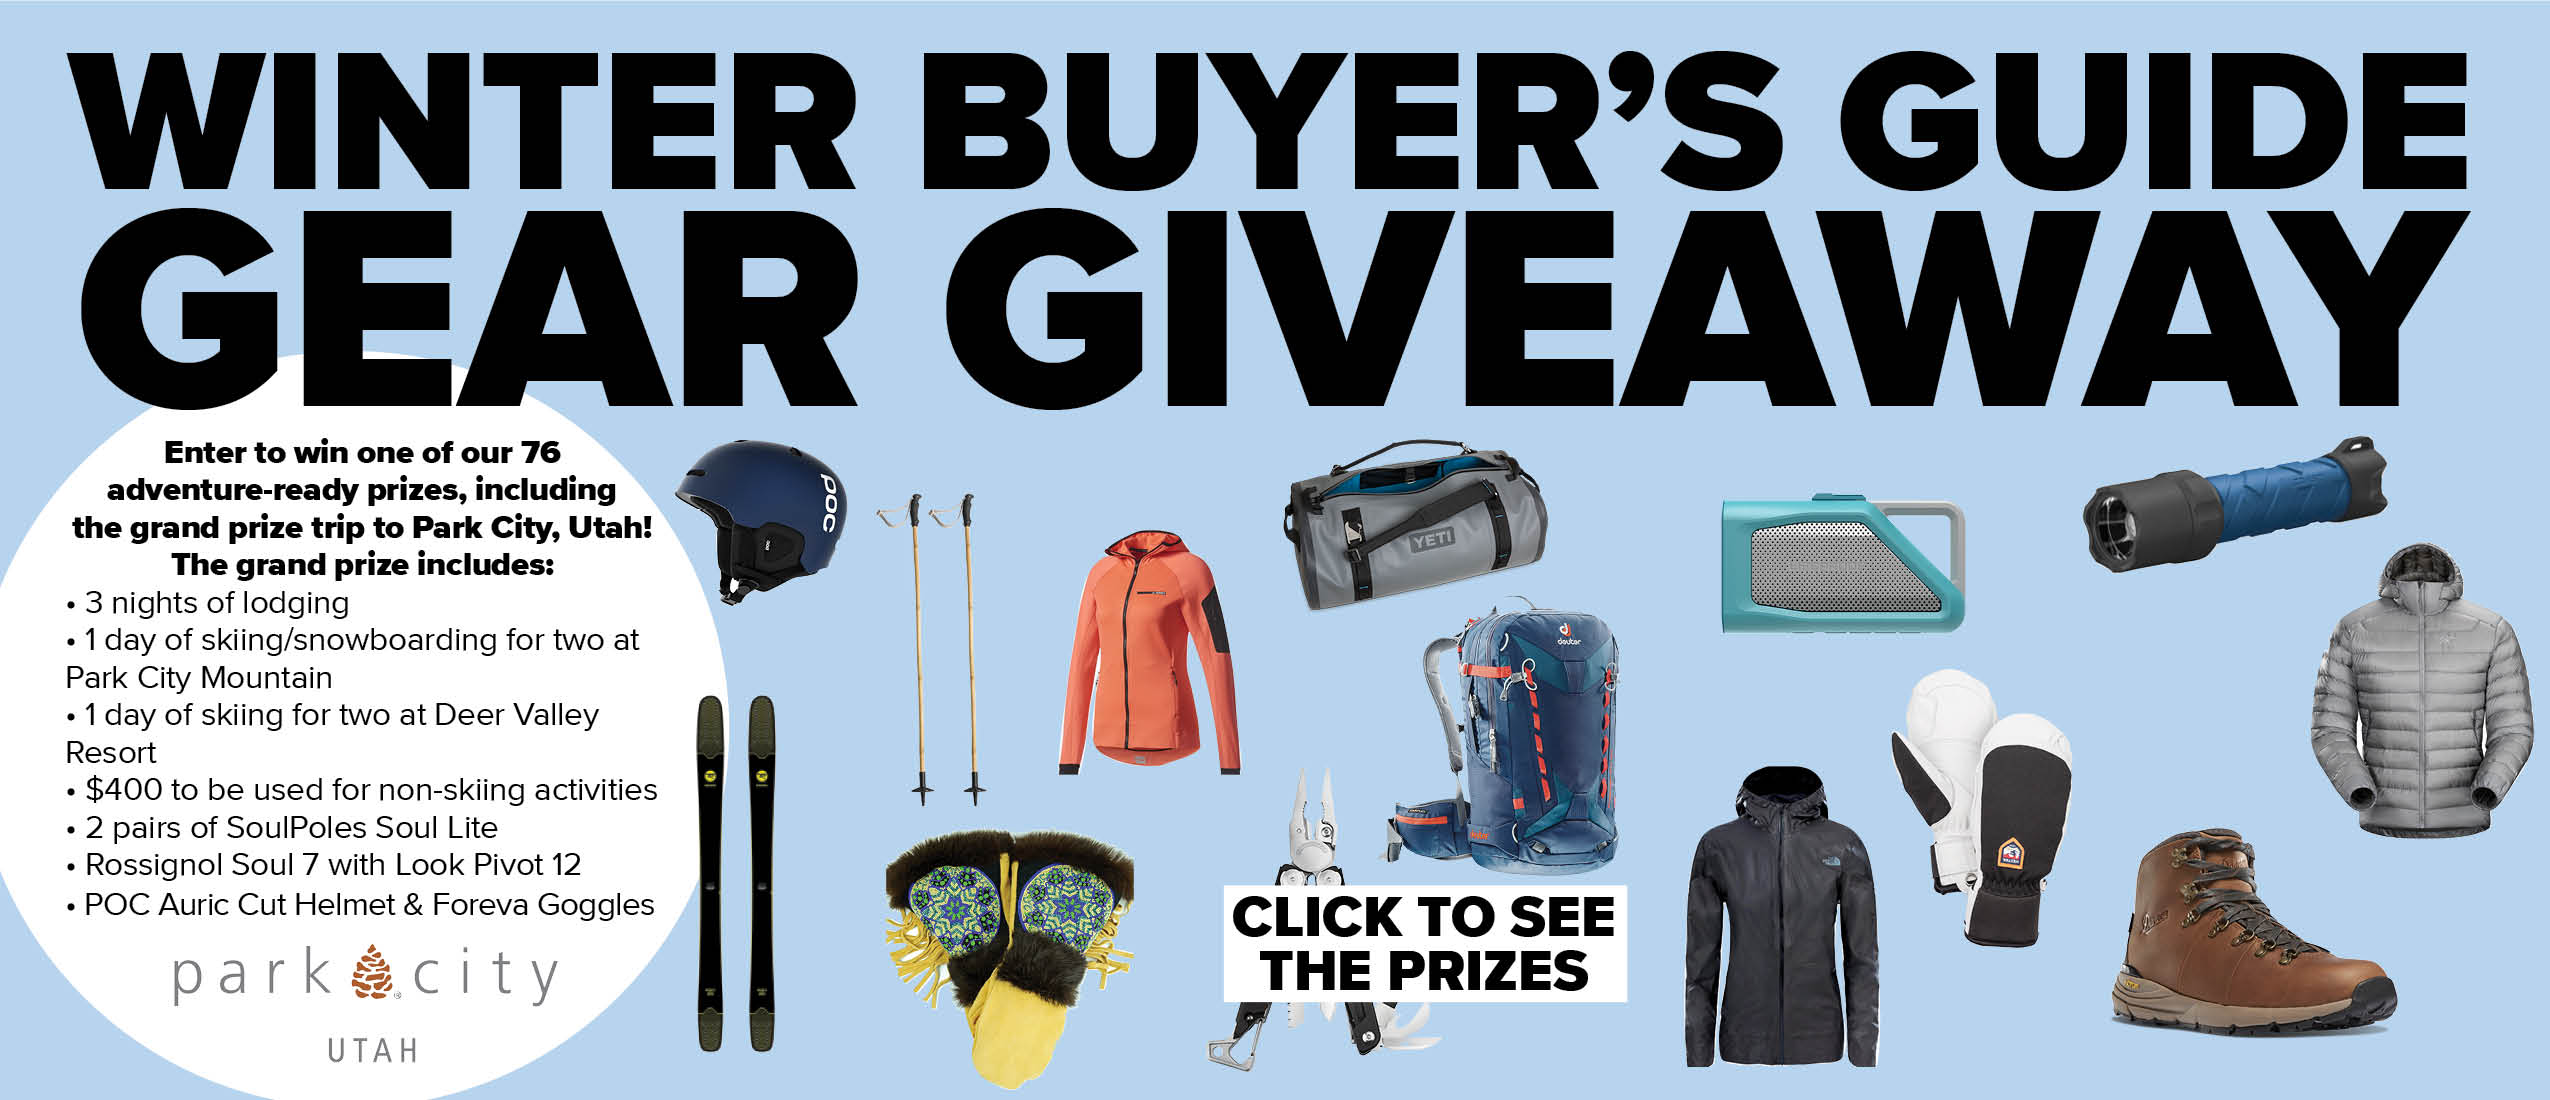 Outside Magazine is giving away goodies from their Winter Buyer's Guide